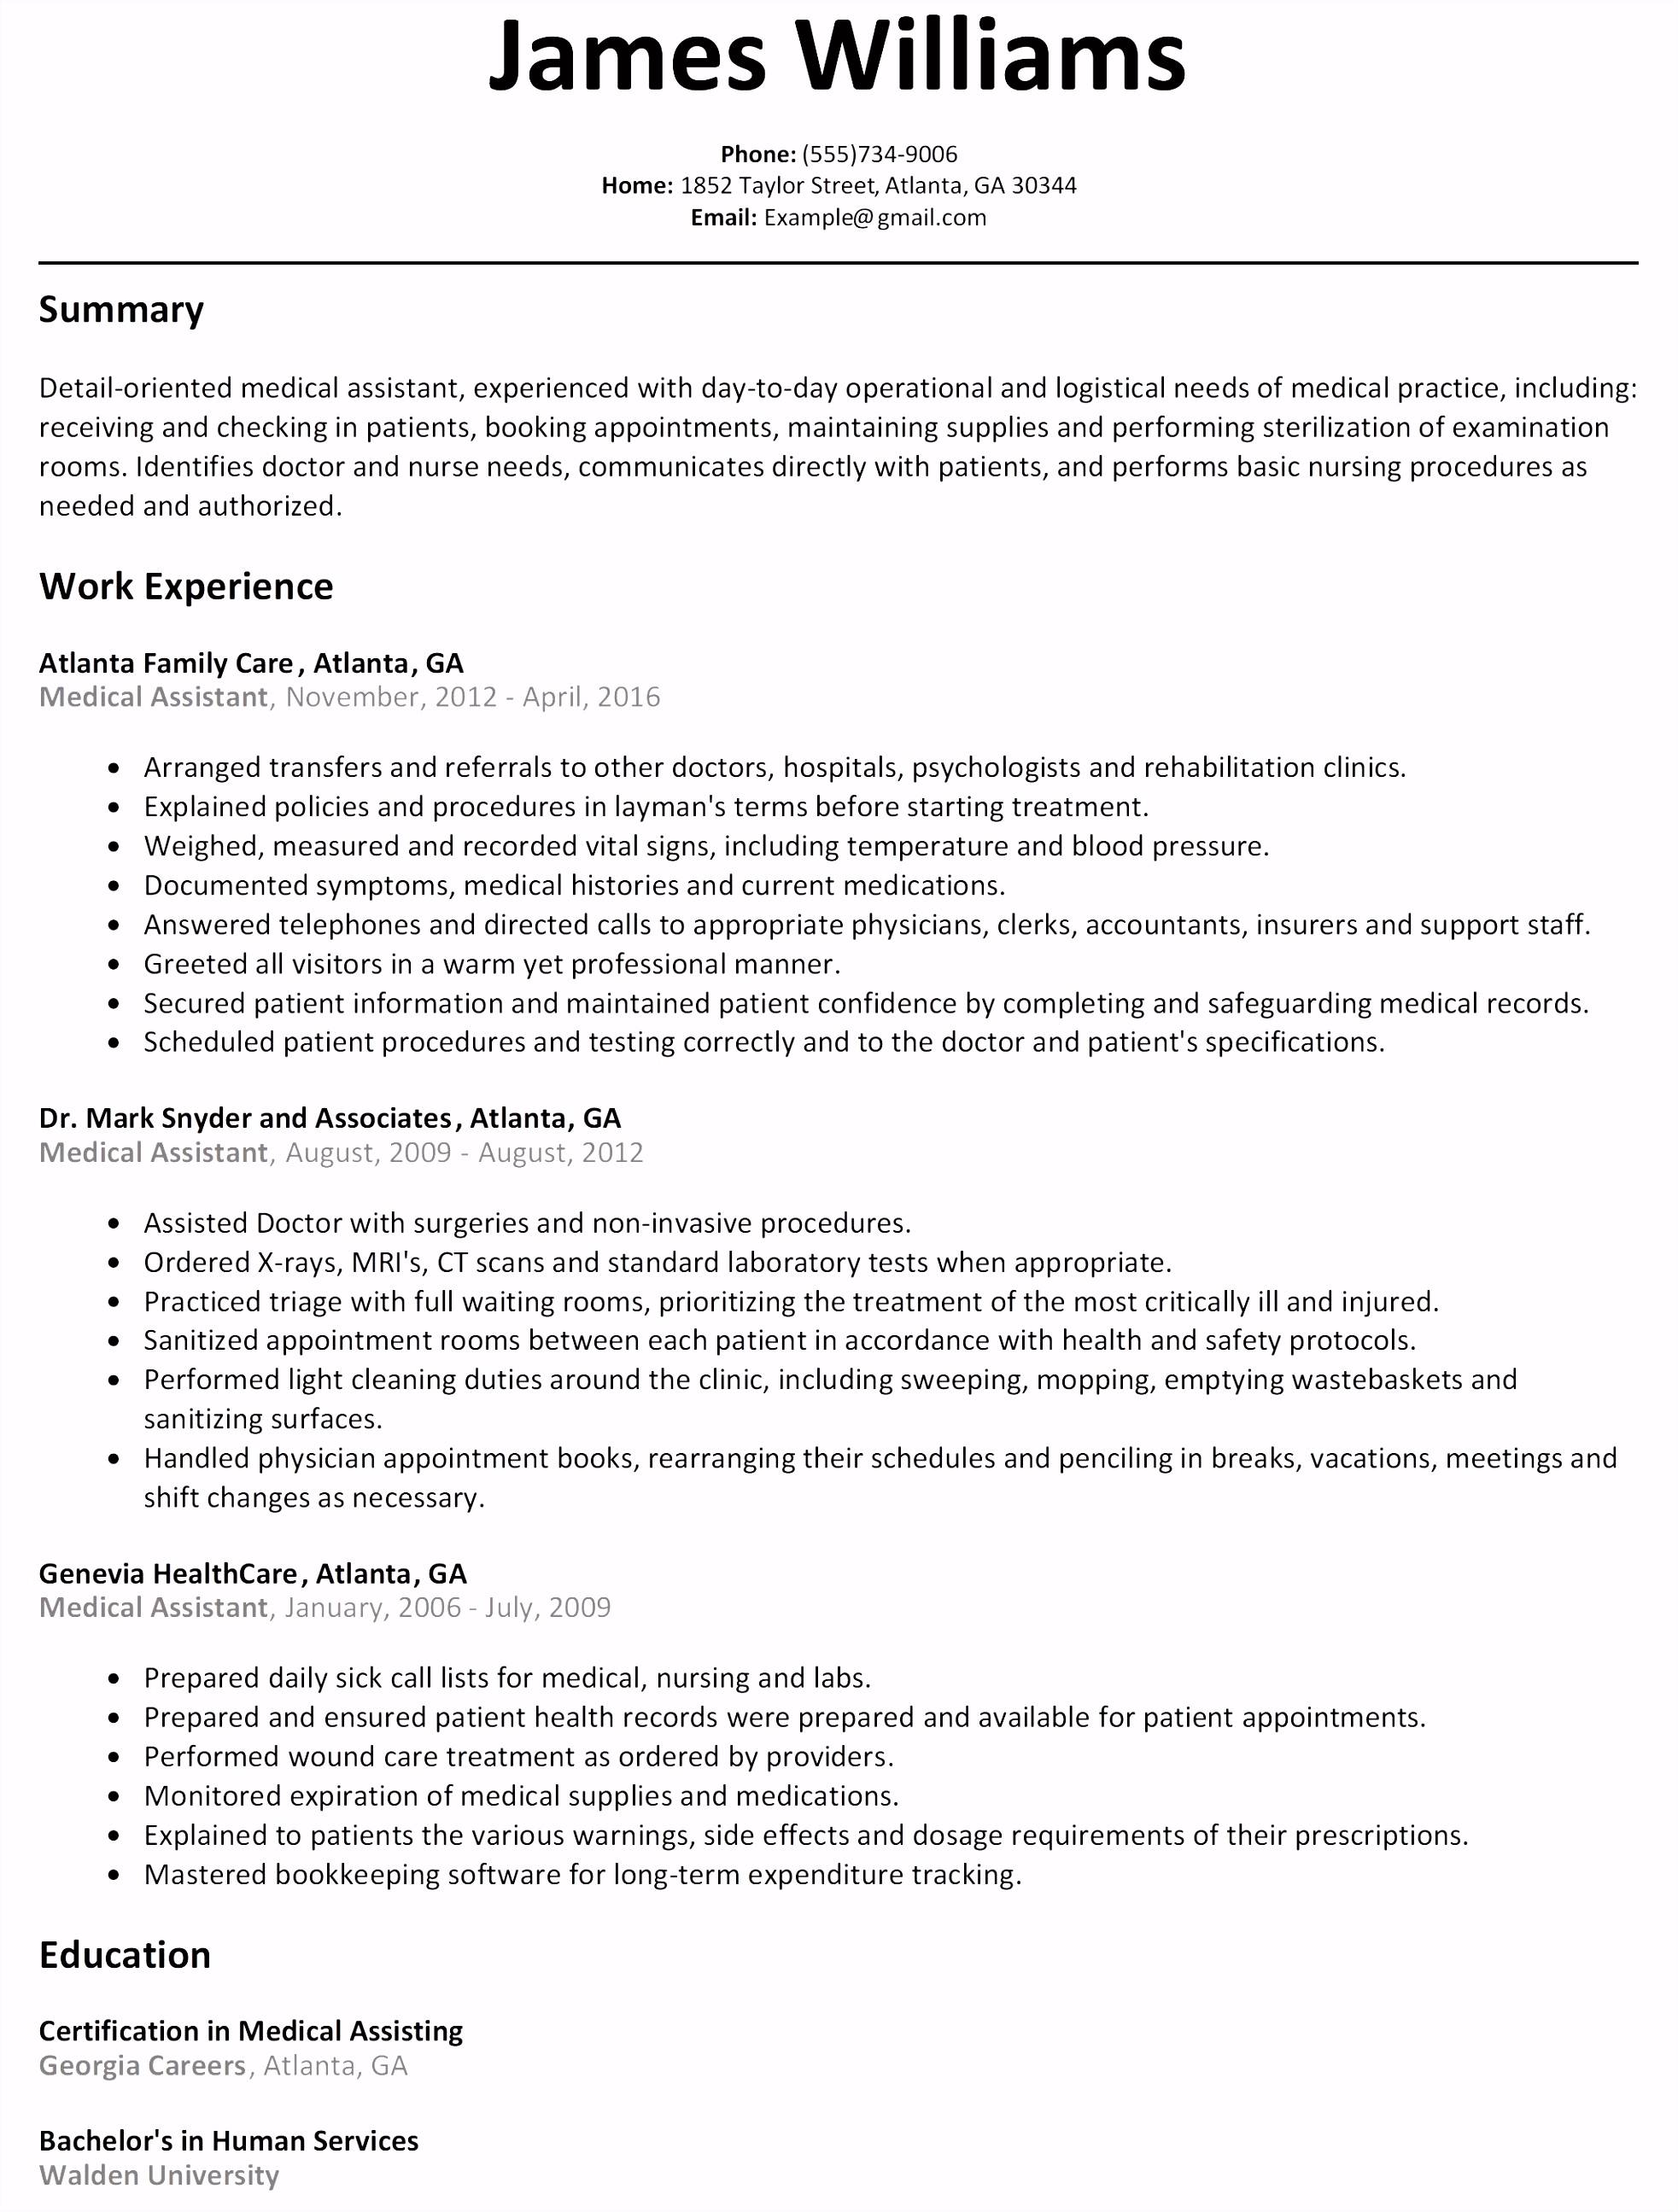 Tammy Howell – Professional Resume Template